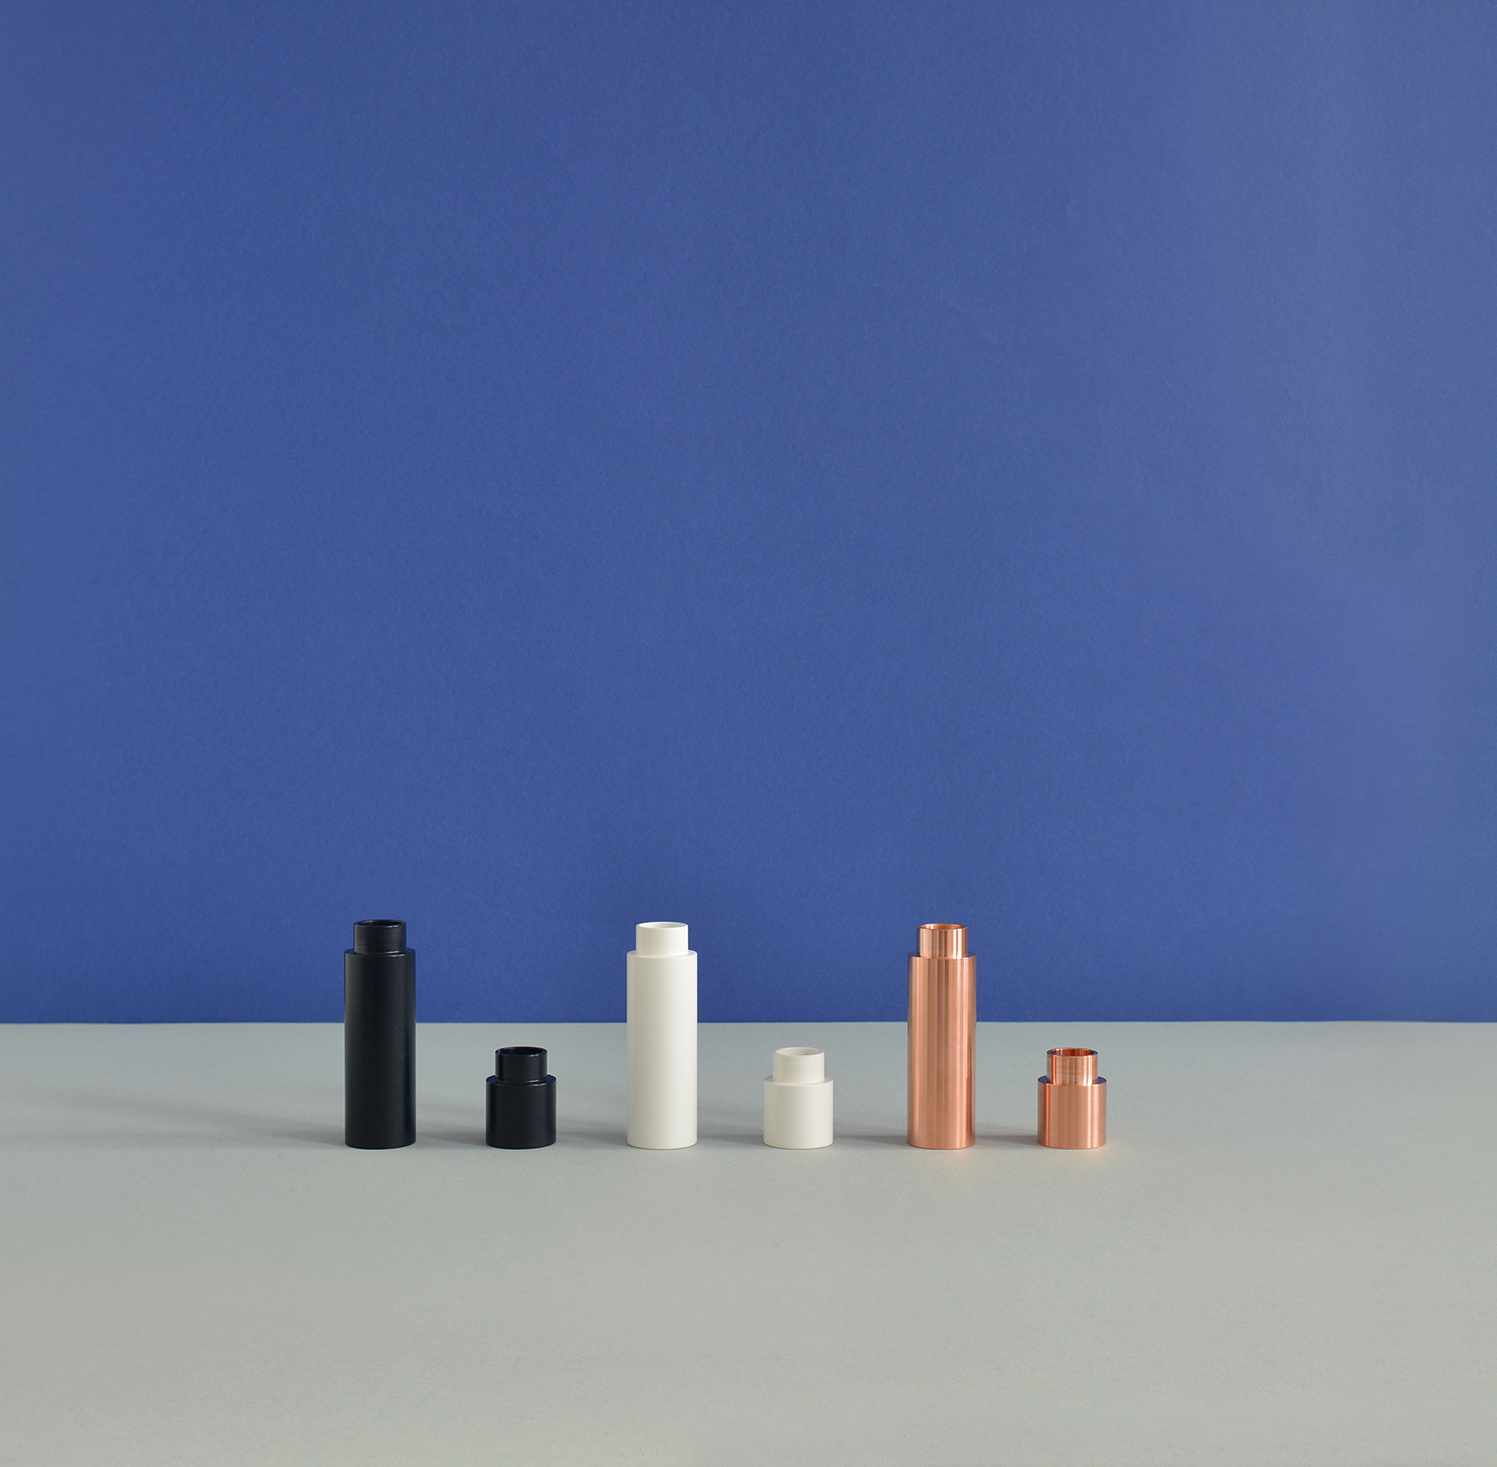 Modular Candleholders | Stack by Earnest Studio